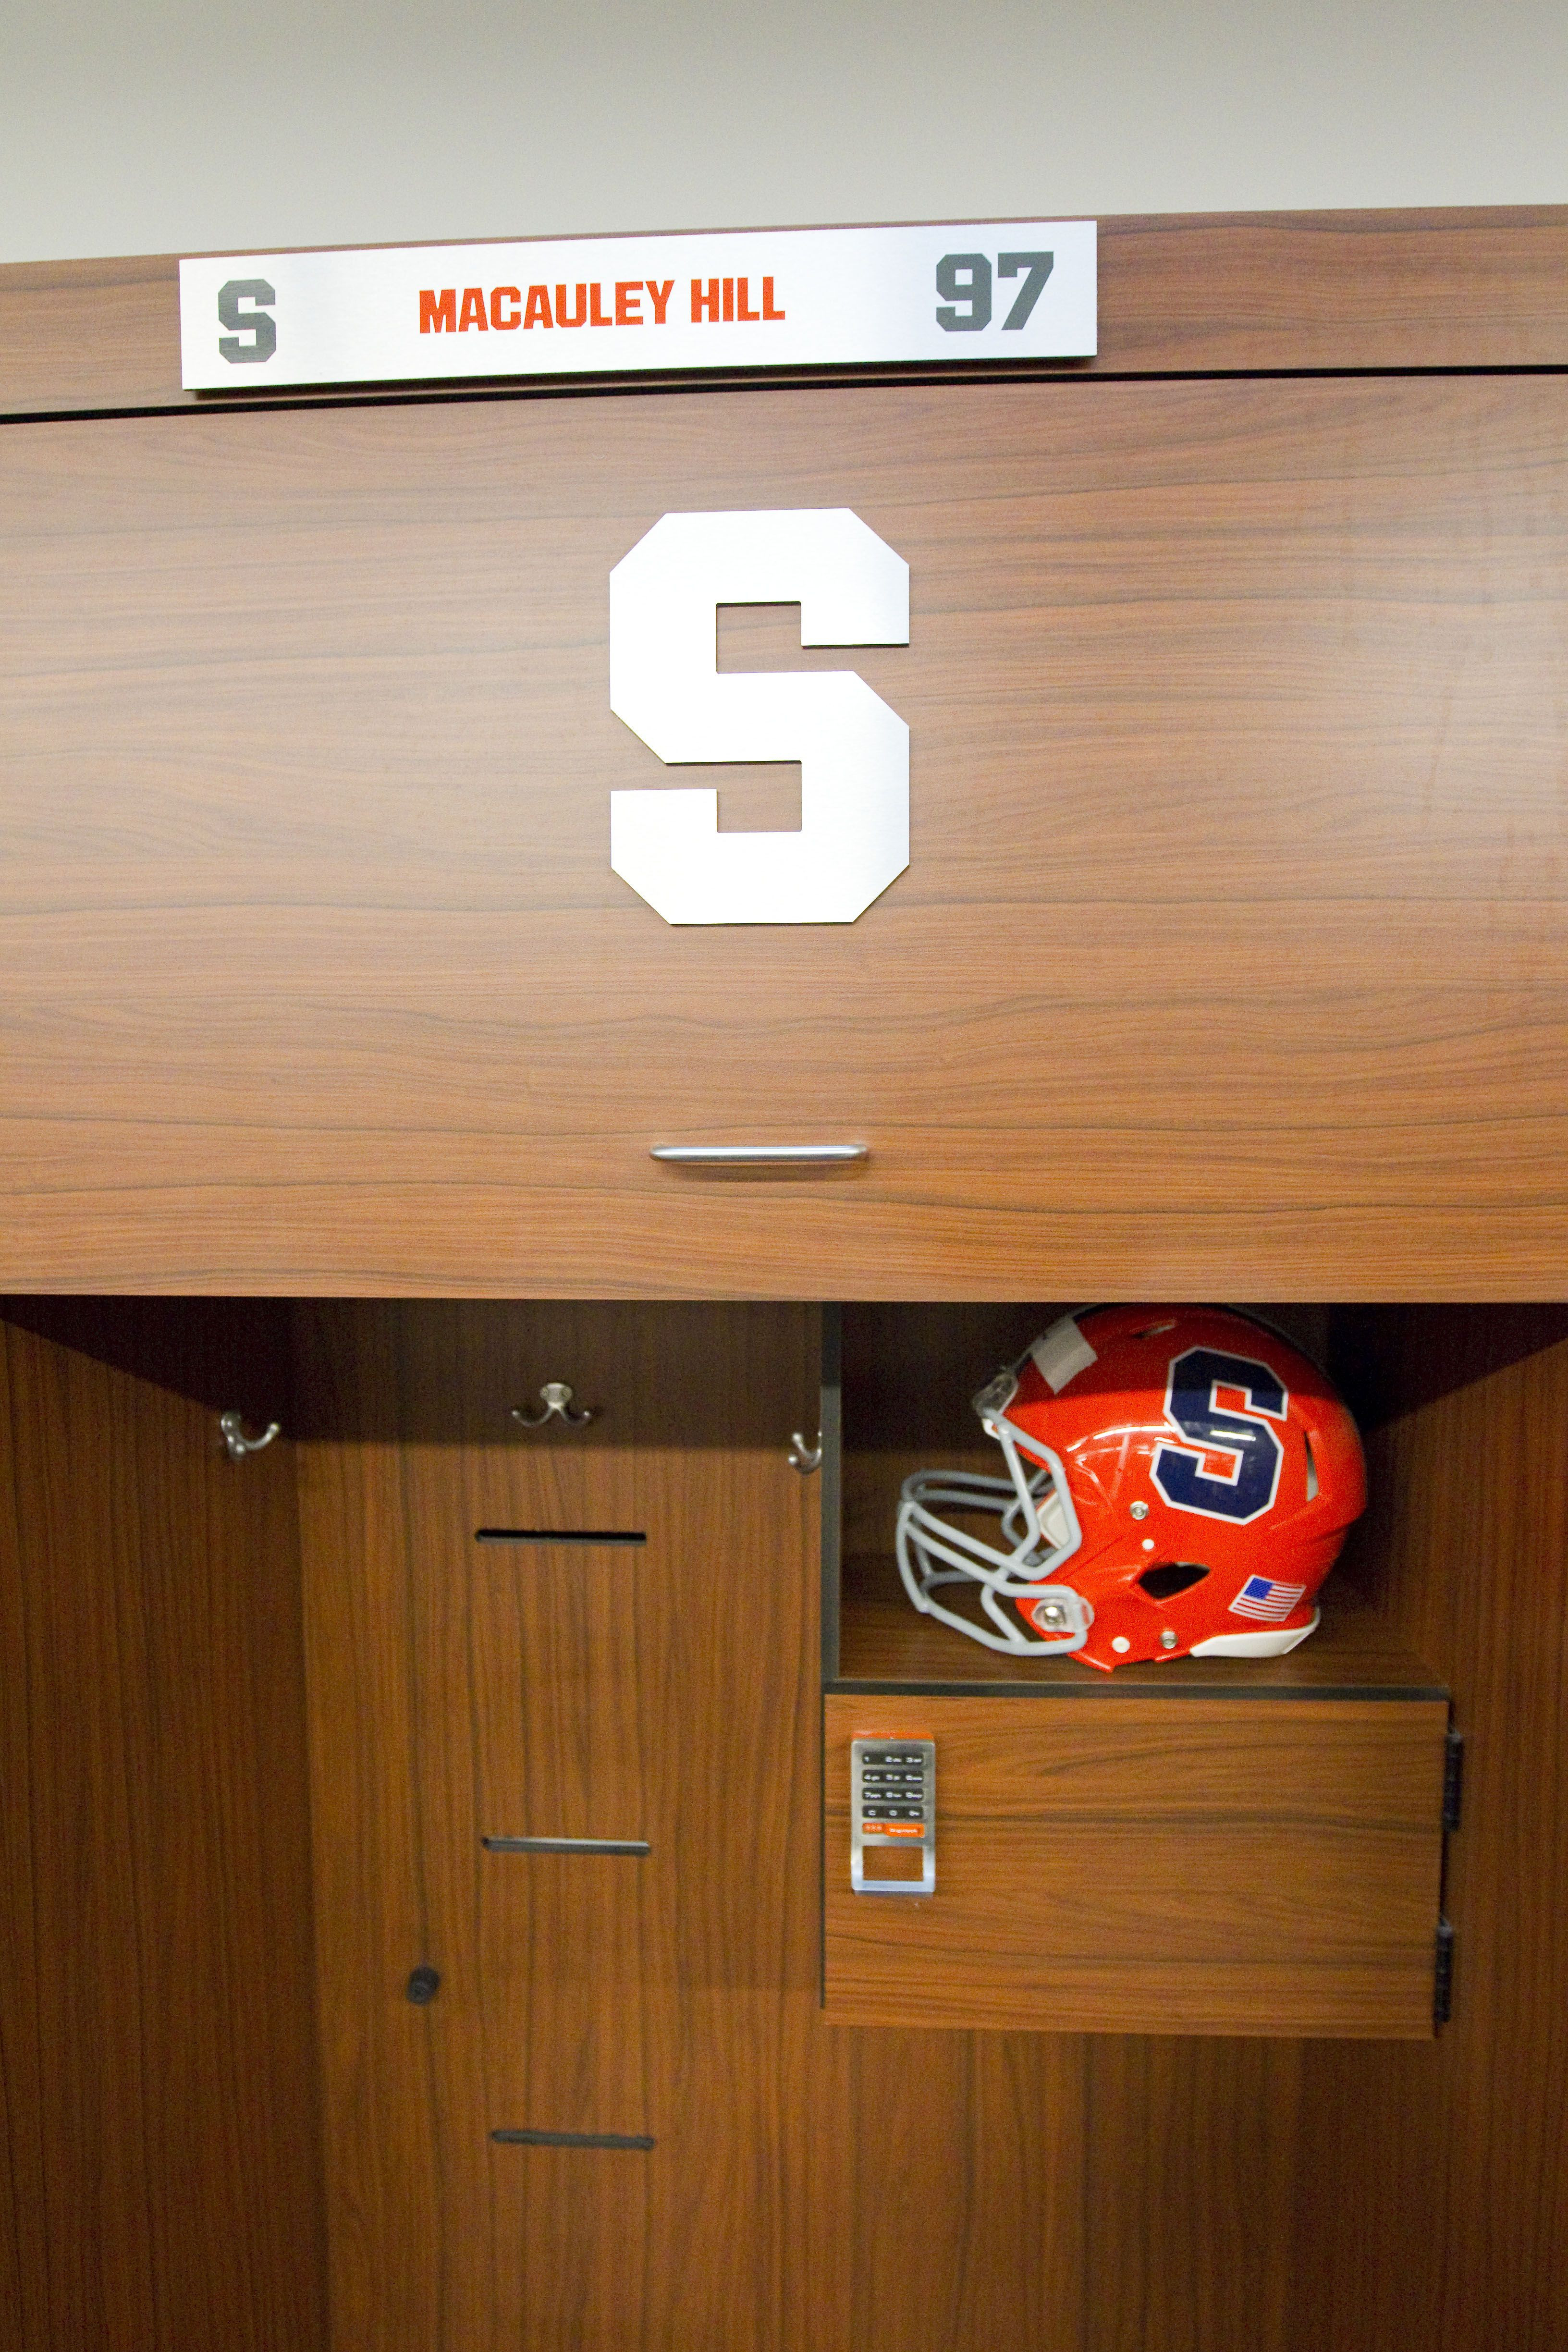 hardwood floor installation syracuse ny of syracuse university syracuse football locker room pinterest inside syracuse university